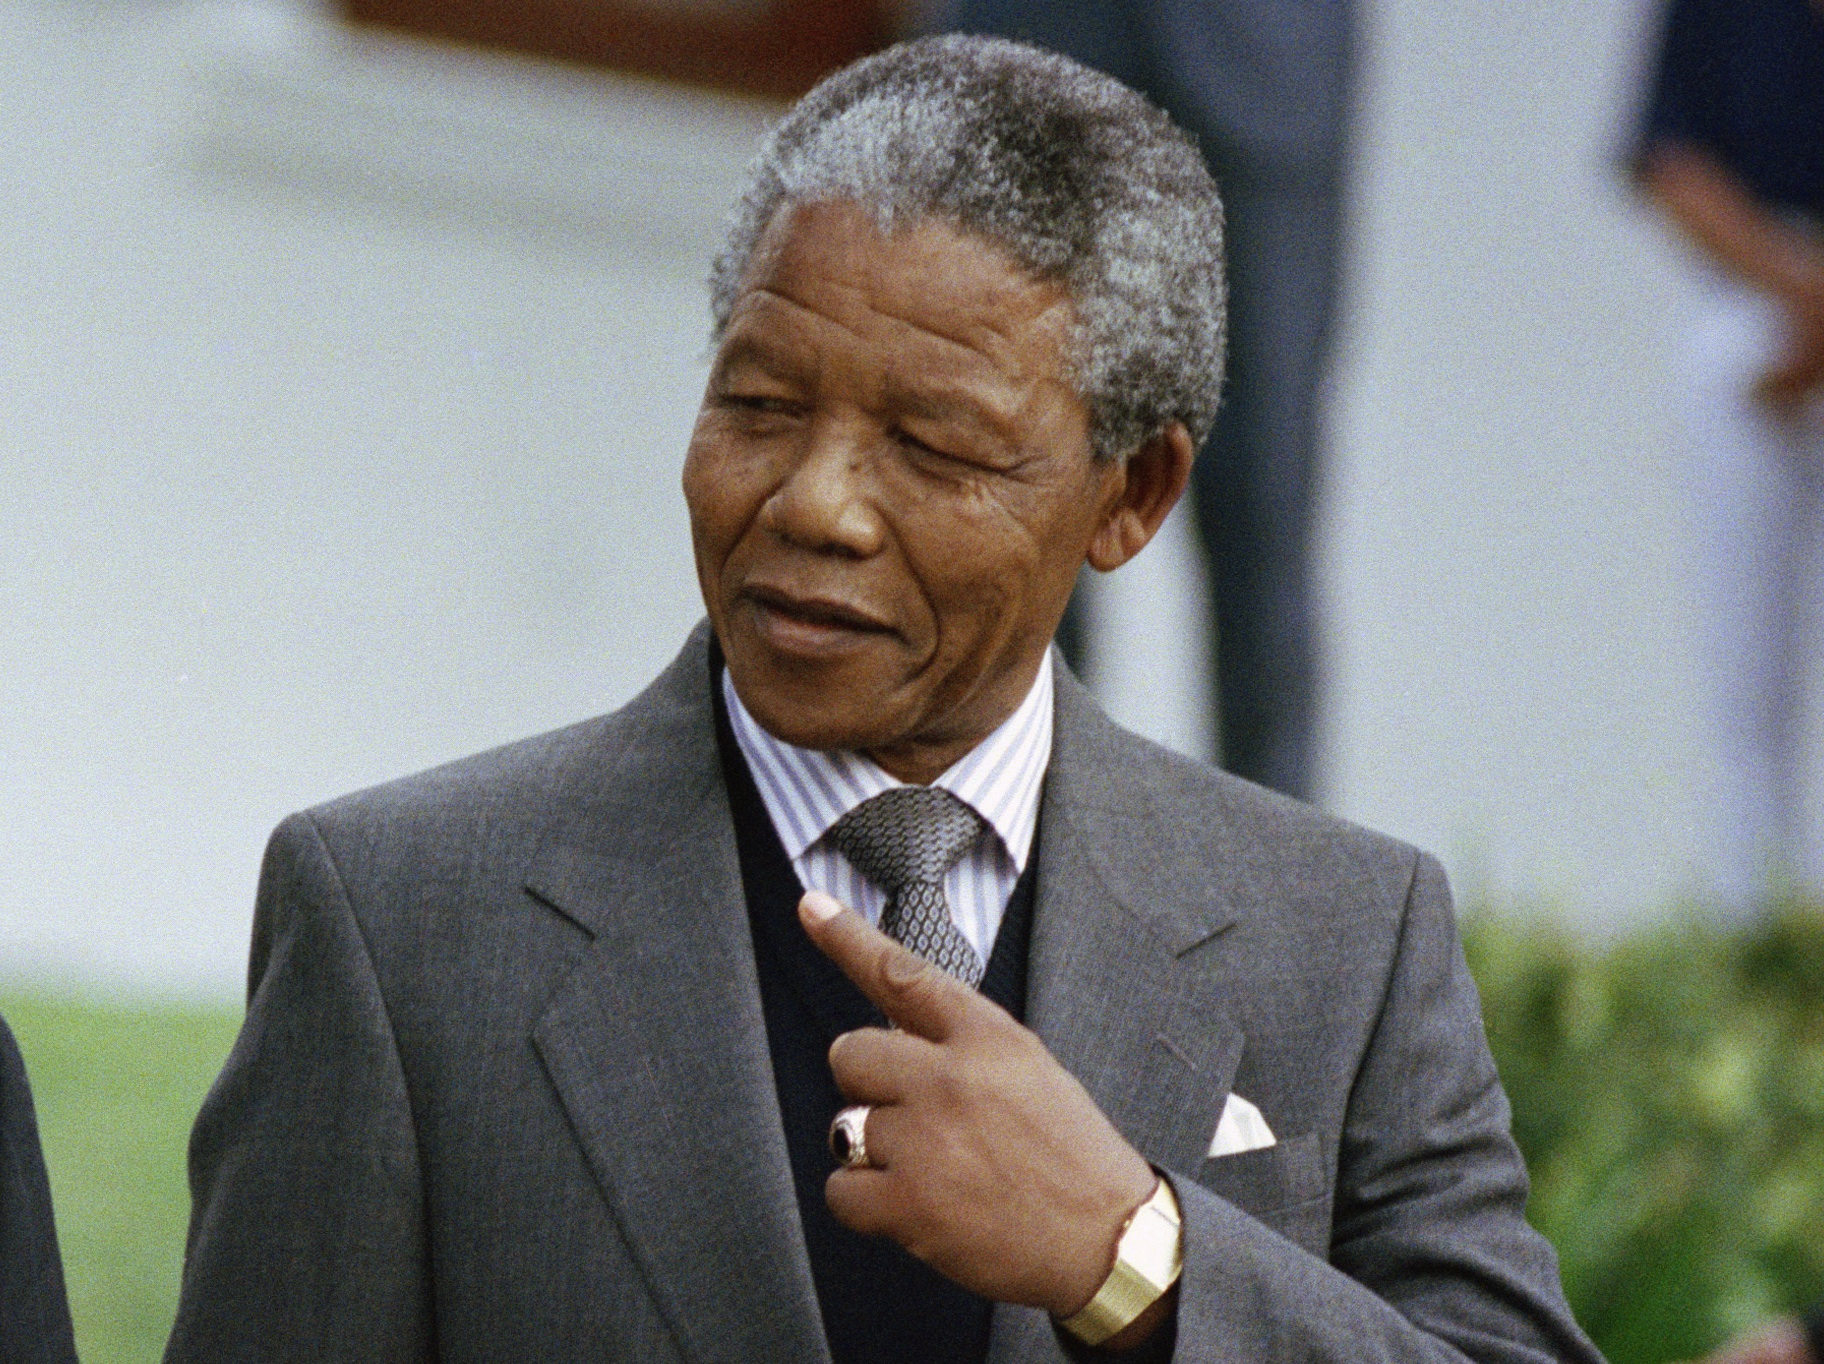 taking a look at nelson mandela Taking a look at nelson mandela 639 words   3 pages nelson rolihlahla mandela was born on the 18th of july 1918 in a small village of mvezo, in mtata and grew up in qunu and that is where he went to school and was given his christian name nelson'' by his teacher.